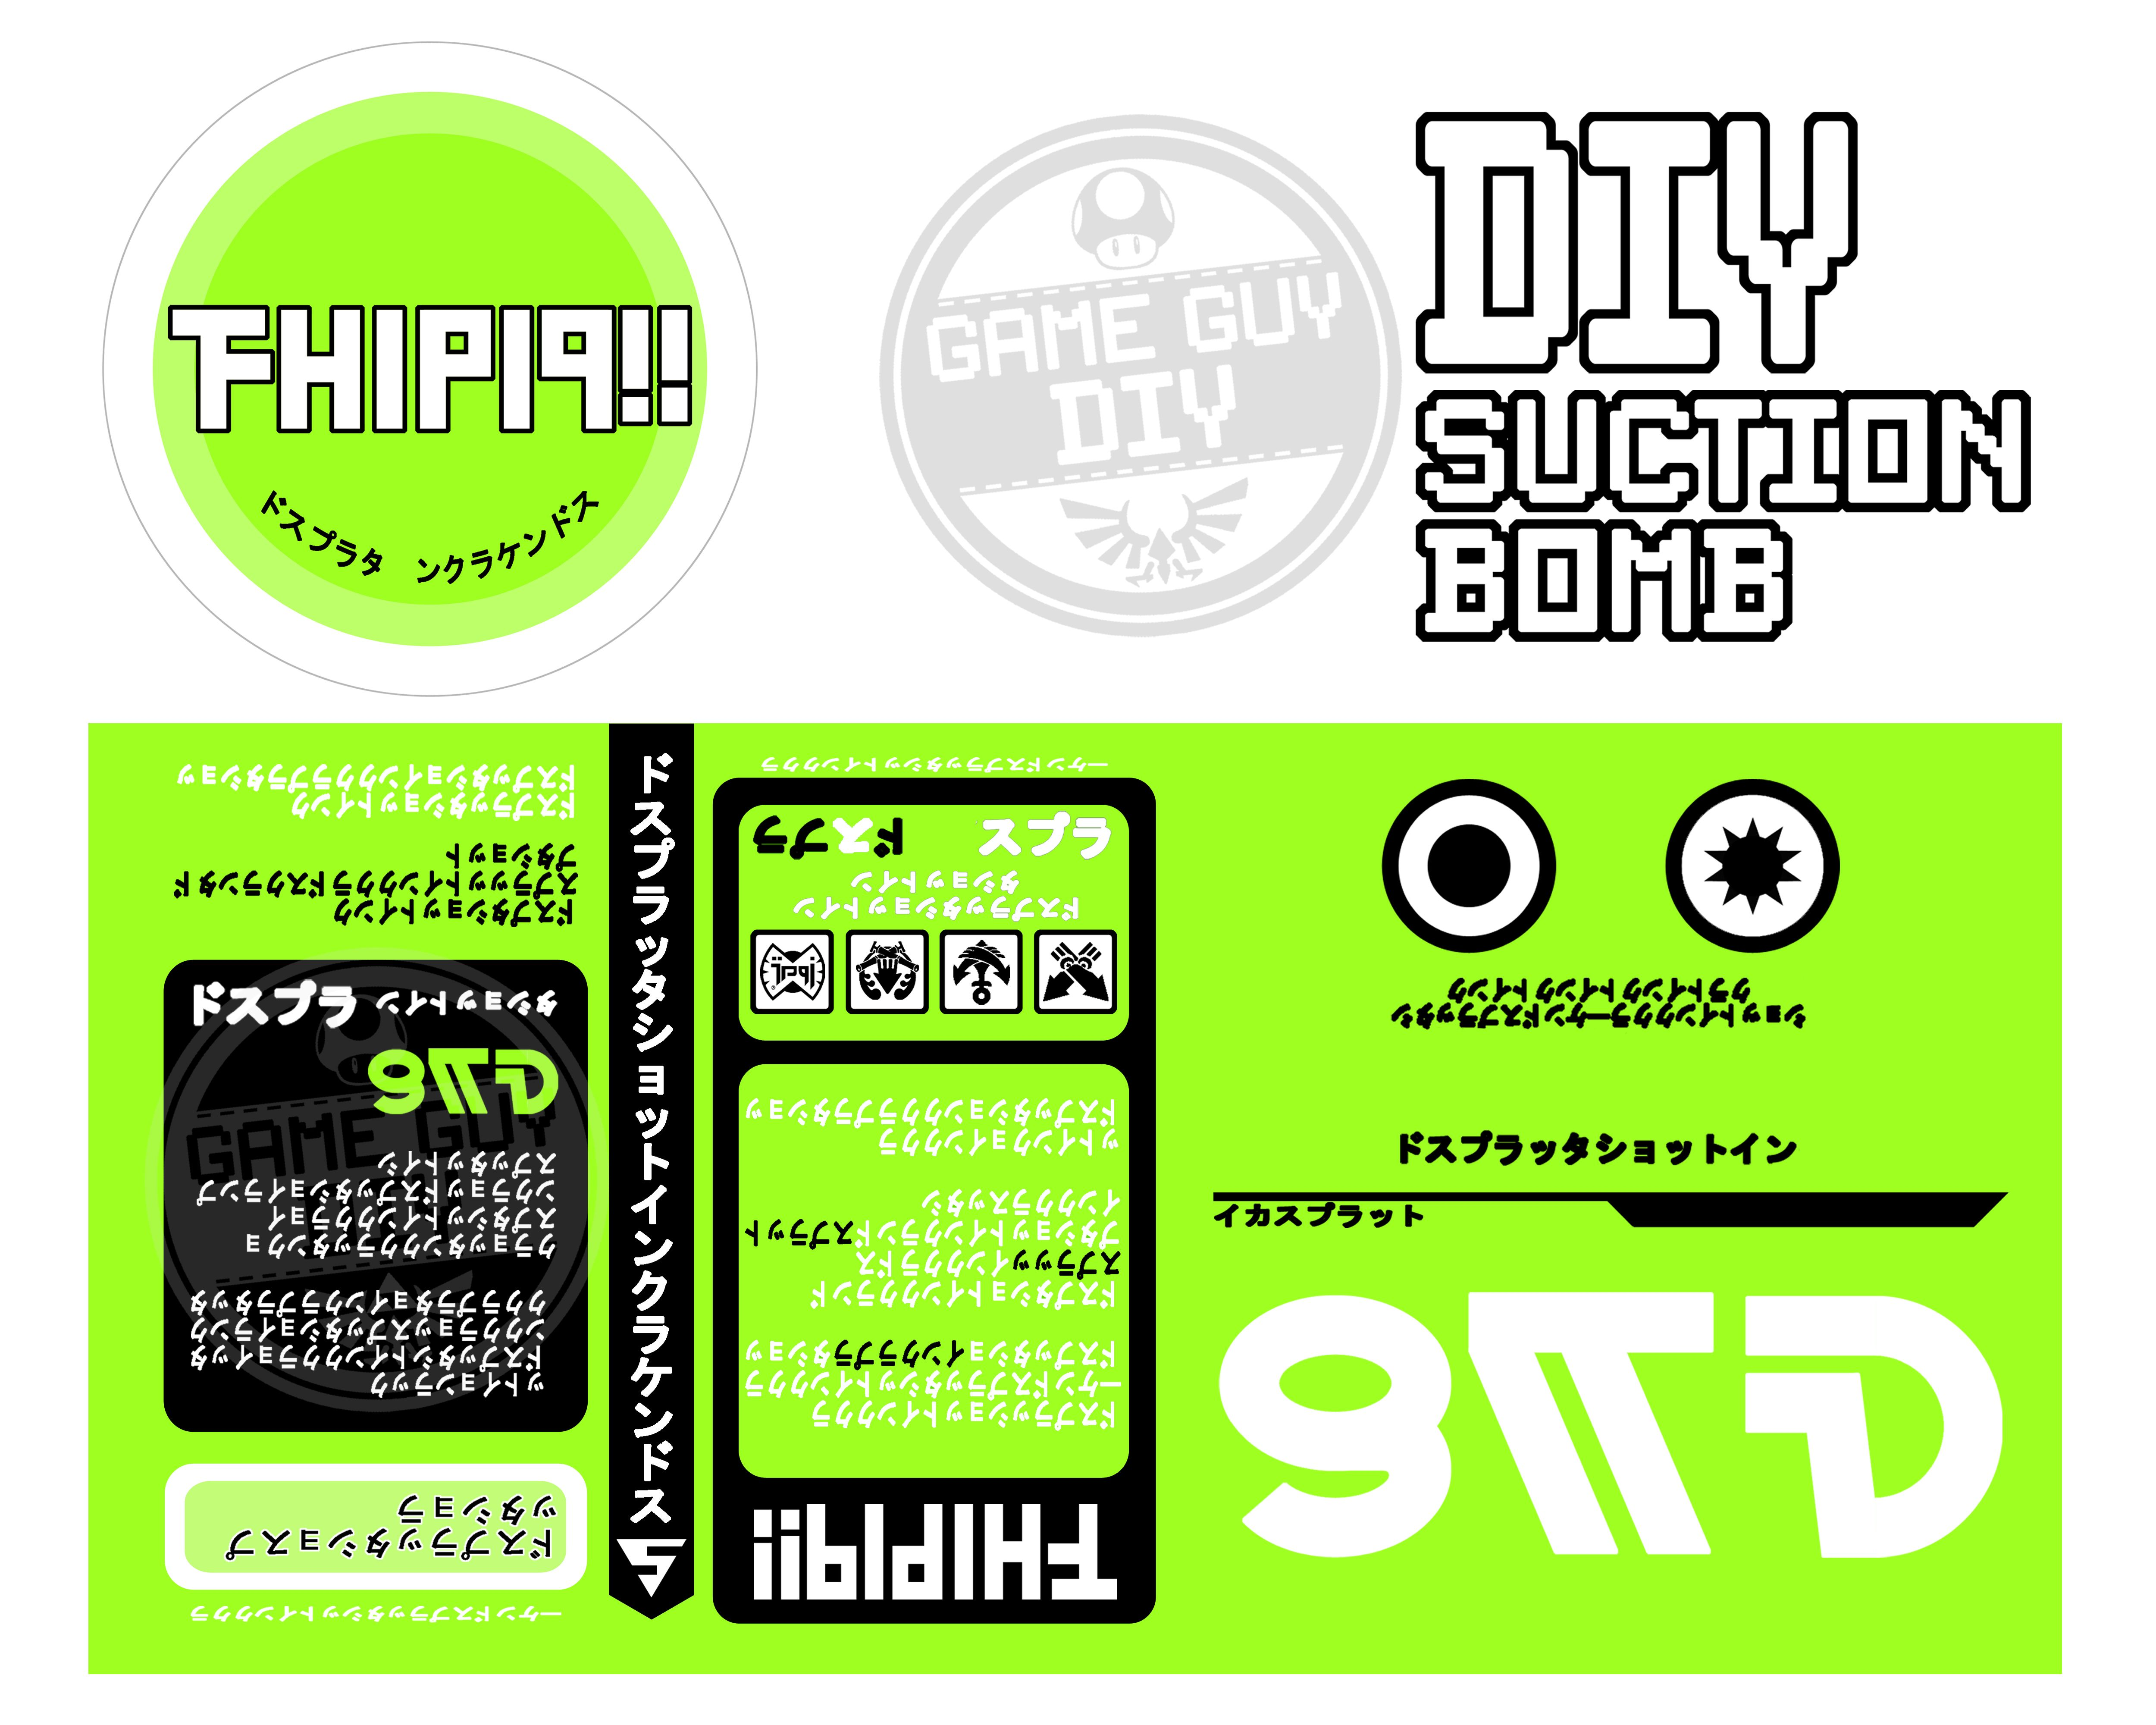 Splatoon Suction Labels Feel Free To Use These Labels In Any Of Your Diy Projects Please Do Not Use For Financial Profit Or Claim Ownership Thanks